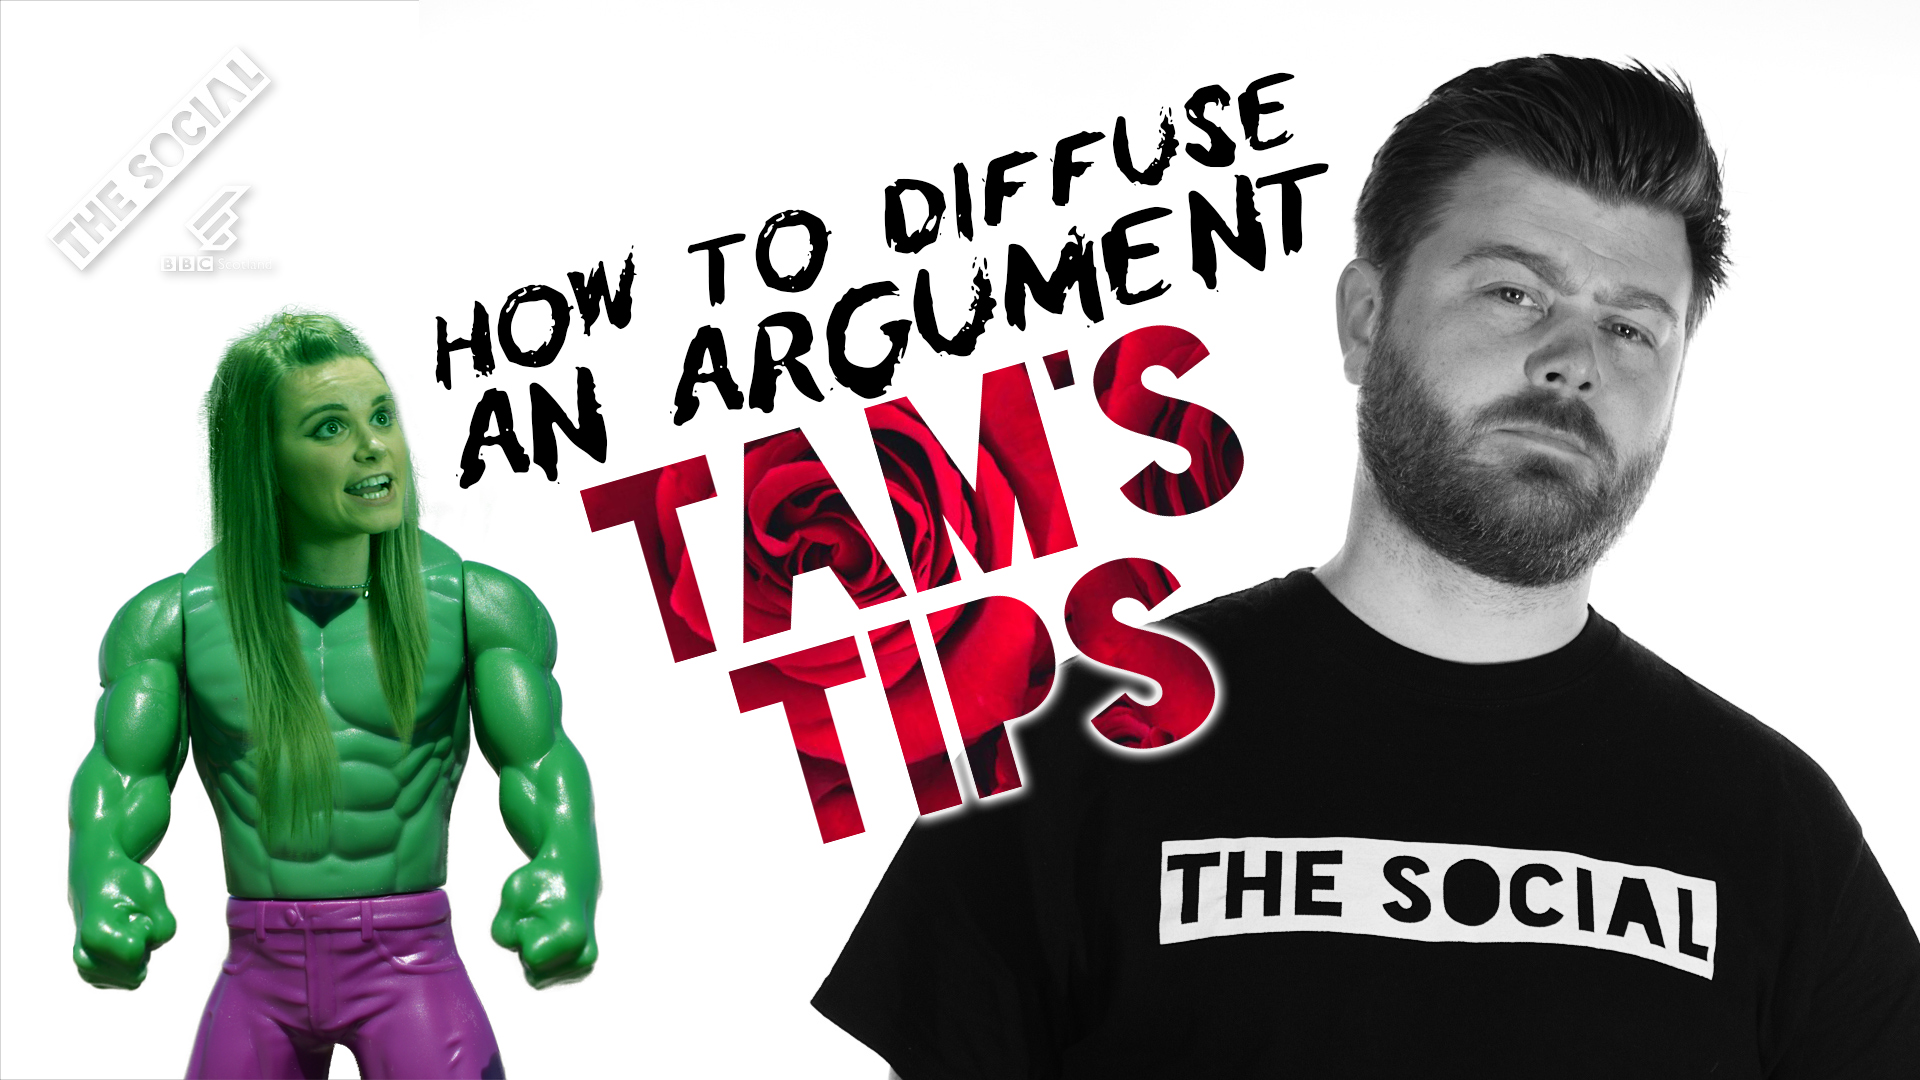 HOW TO DIFFUSE AN ARGUMENT